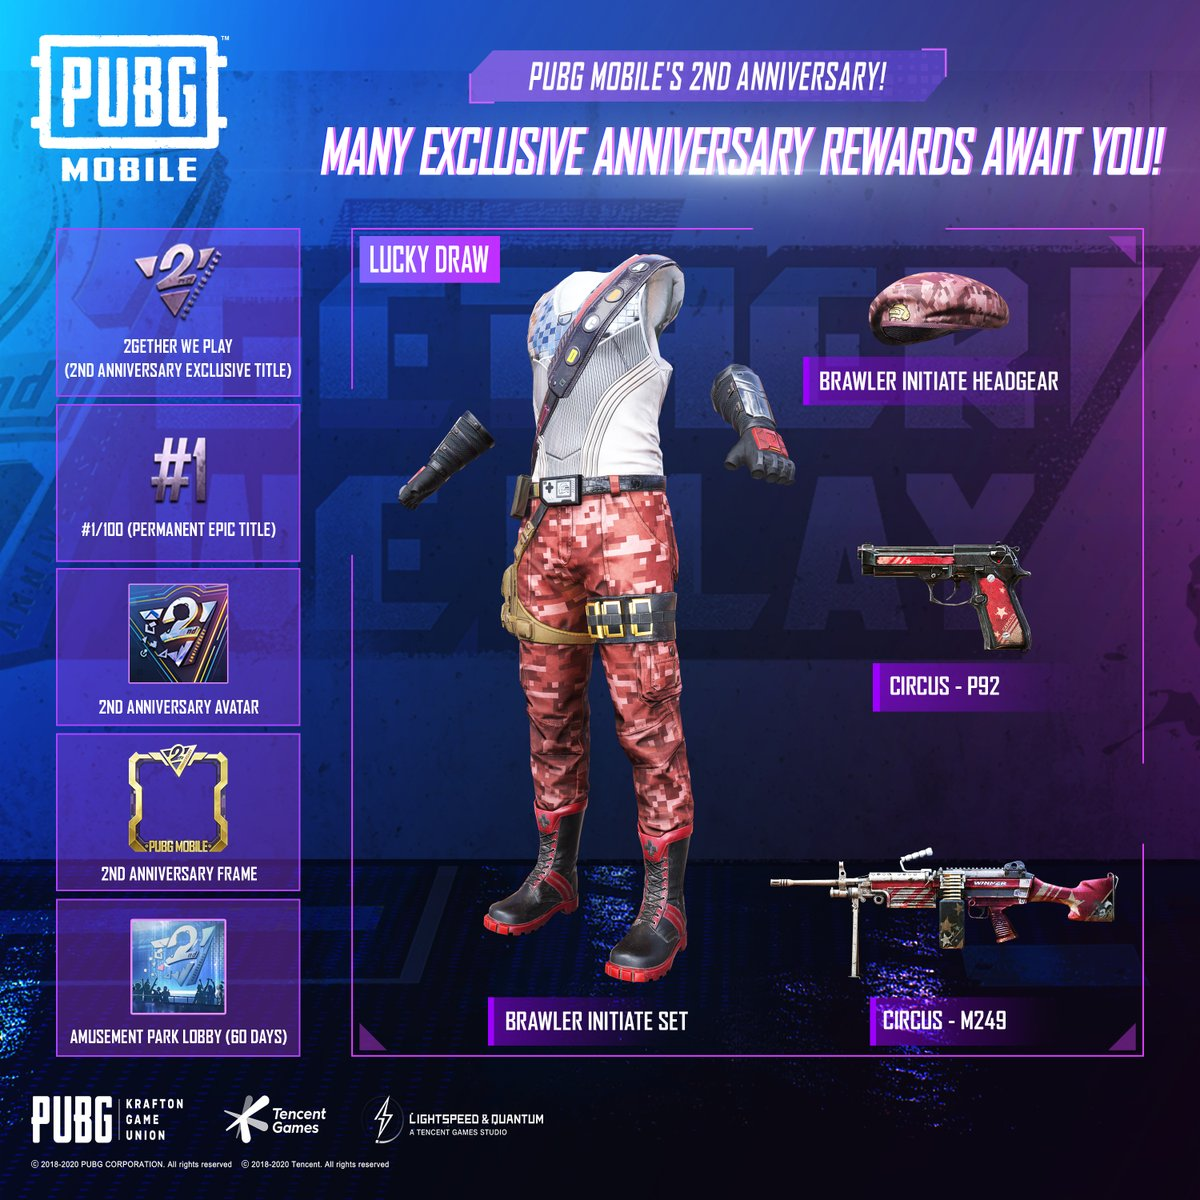 Pubg Mobile On Twitter Curious What You Can Obtain In The 2nd Anniversary Event Get The Brawler Initiate Set And Circus Weapon Skins Starting March 12th 2getherweplay Https T Co 5vezsphxbh